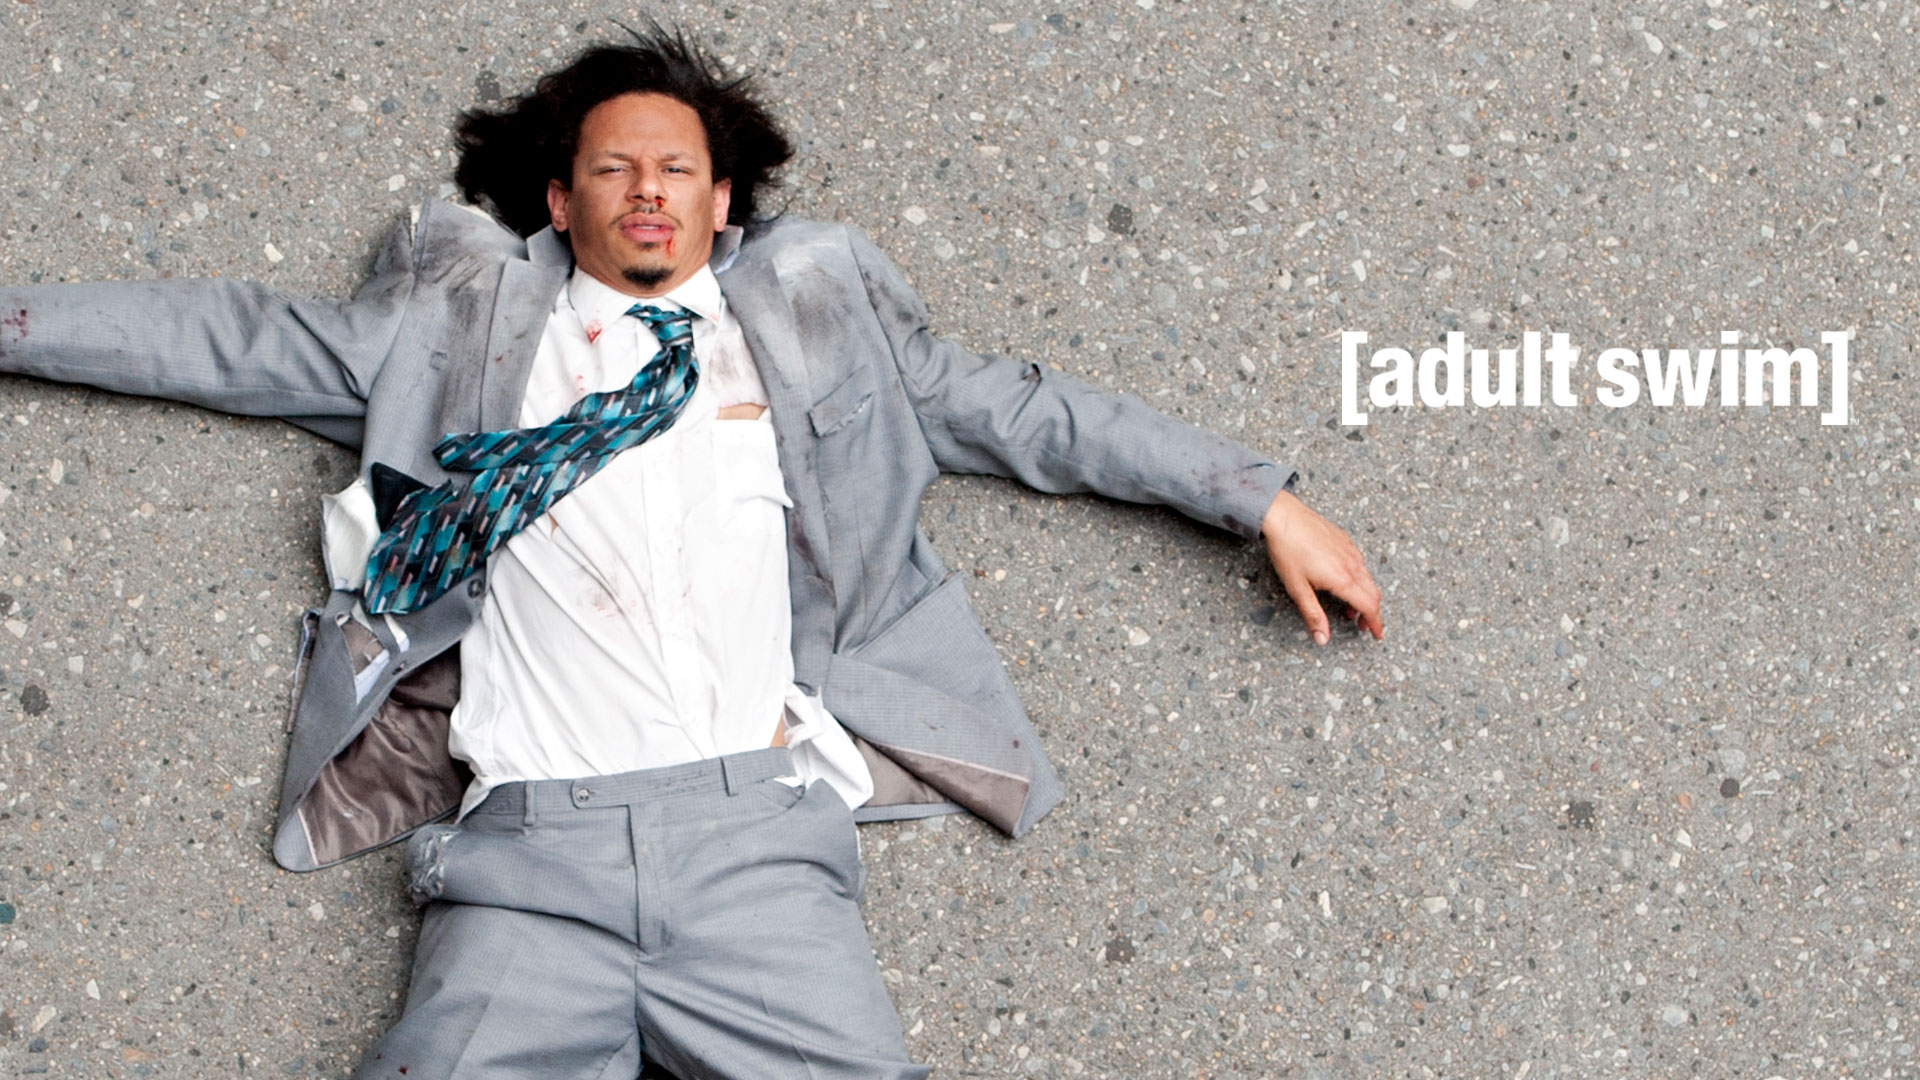 eric andre show full episodes free